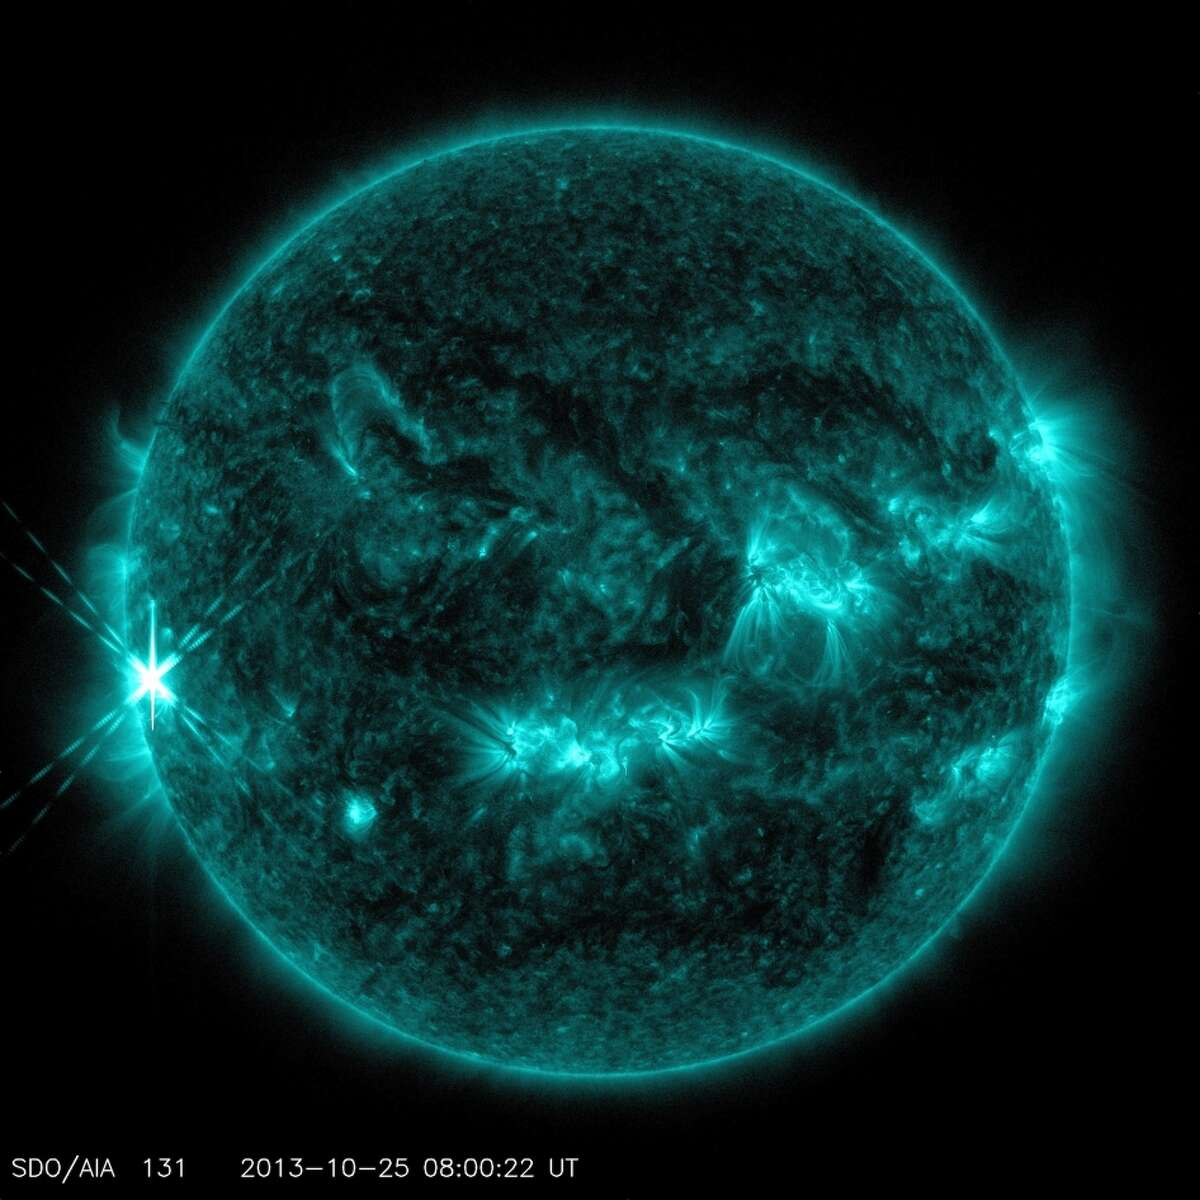 NASA's Solar Dynamics Observatory captured this image of an X1.7 class flare on Oct. 25, 2013. The image shows light in the 131-angstrom wavelength, which is good for seeing material at the intense temperatures of a solar flare, and which is typically colorized in teal.